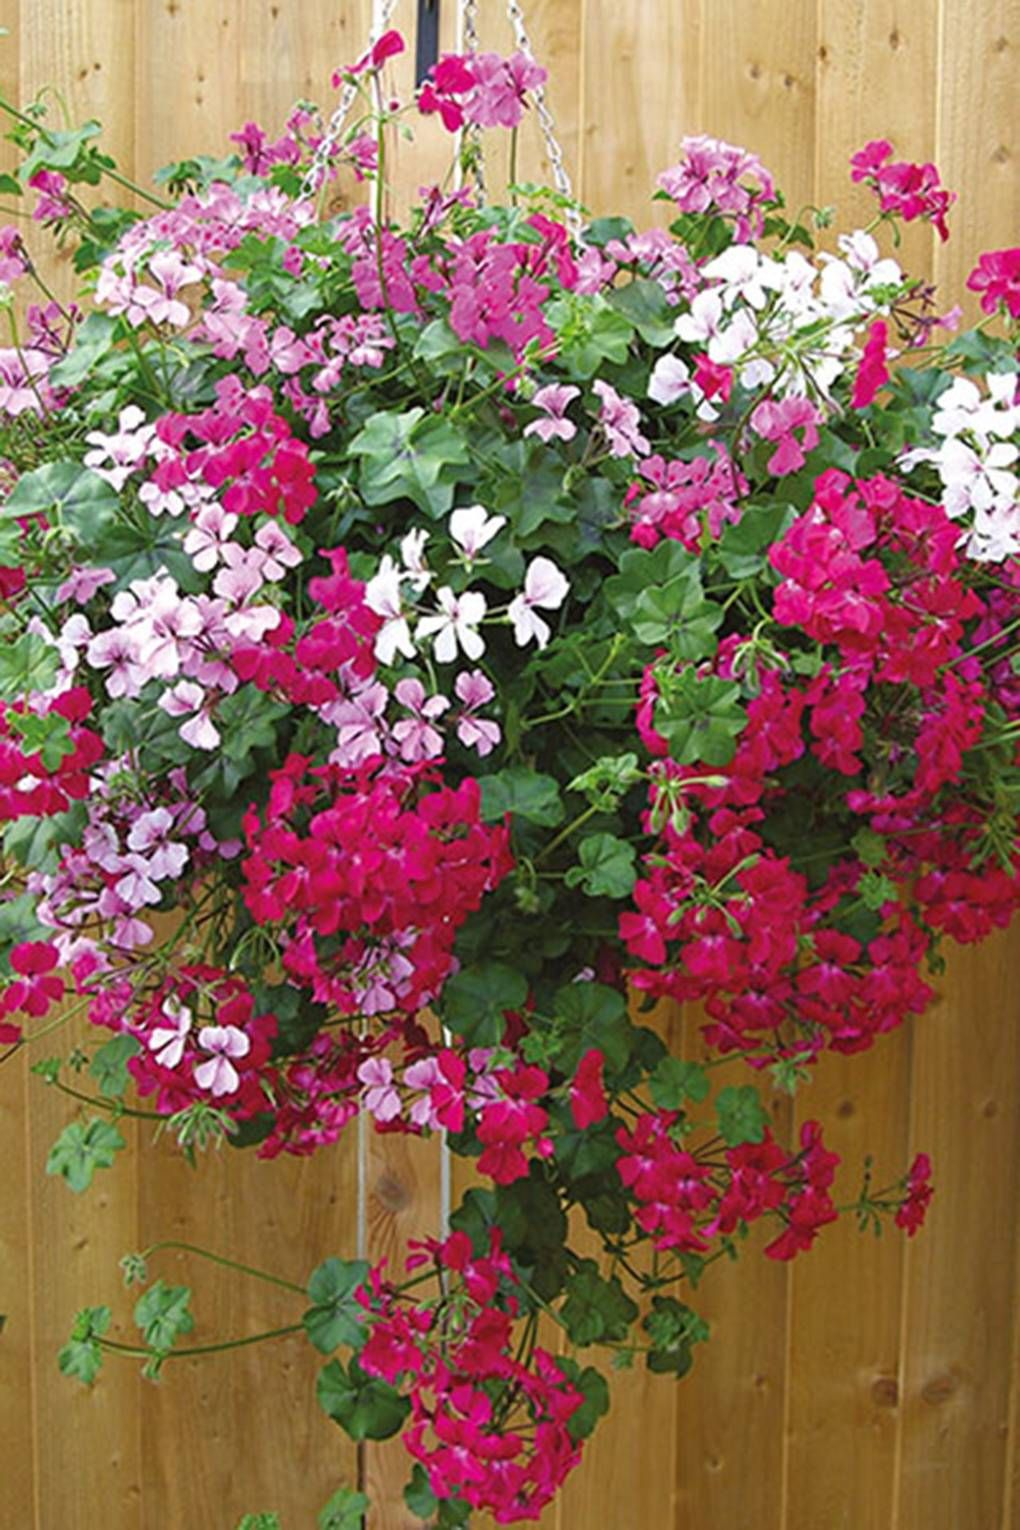 The best hanging baskets and flowers to put in them